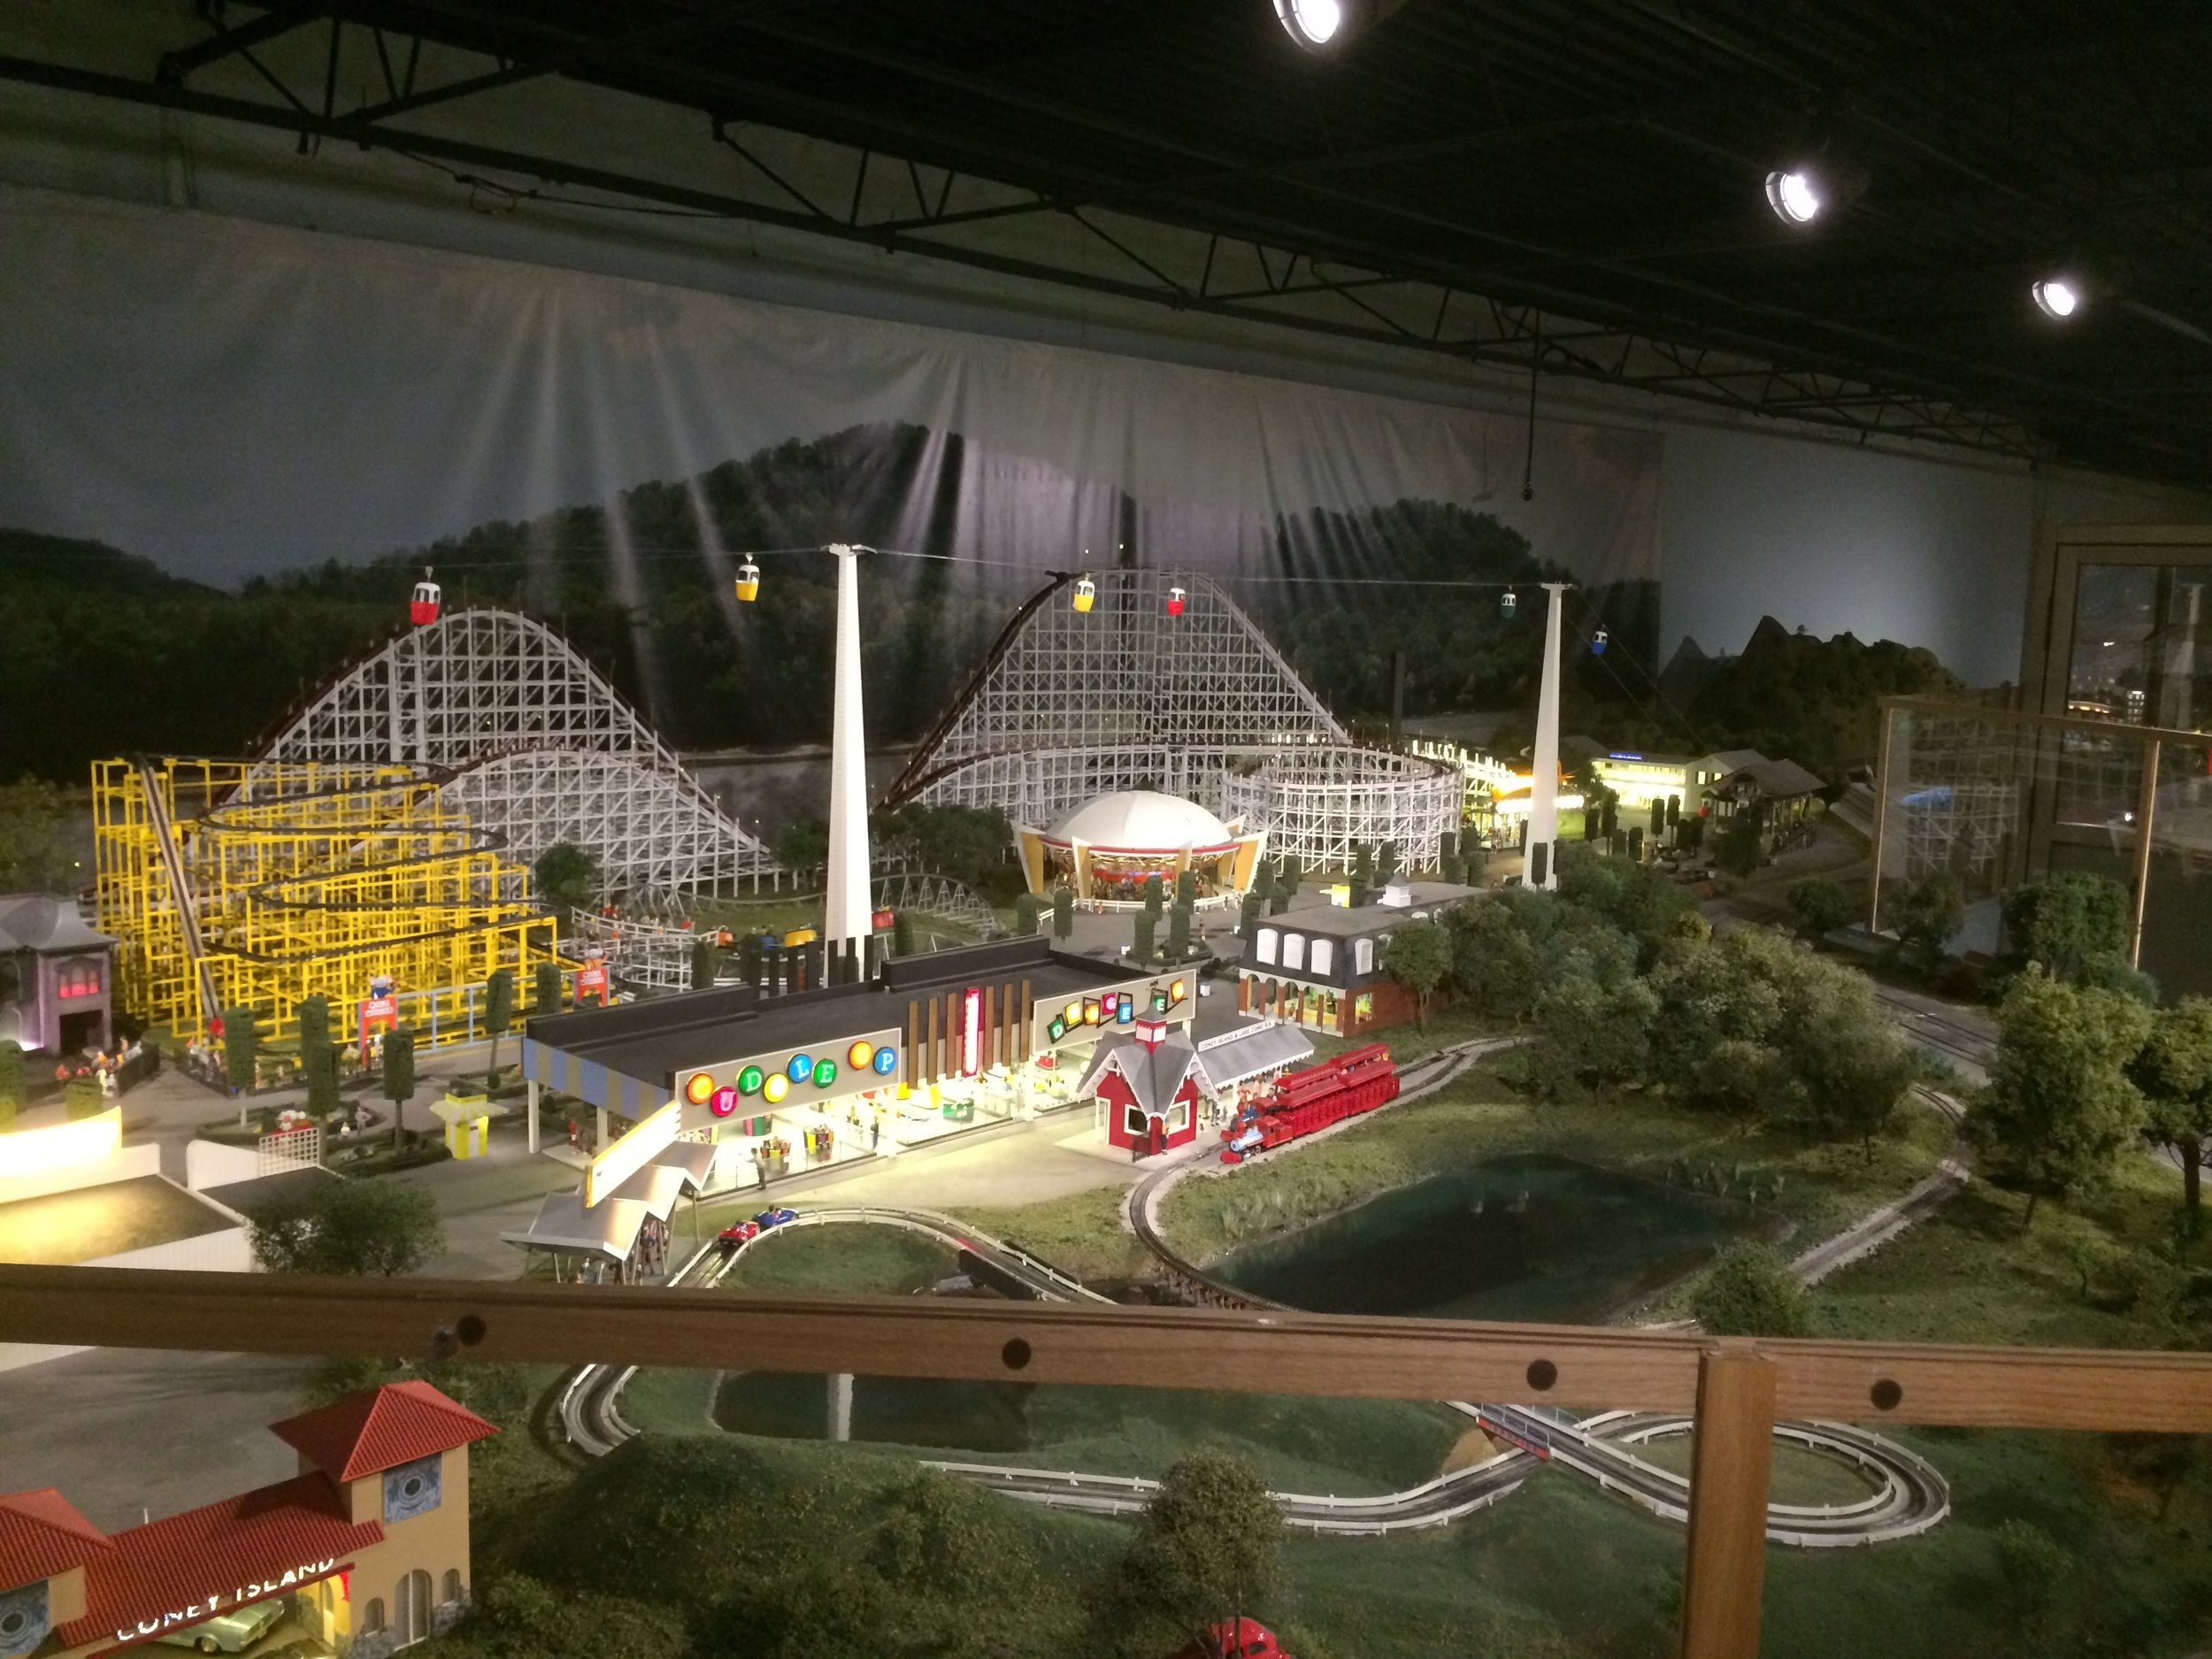 The Coney Island display is absolutely huge. The Shooting Star wooden roller coaster is just over 4 feet tall (almost 1.25 m) and 40 feet long (just over 12 m). Both the Shooting Star in the background and the yellow Wild Mouse model coasters are visible in this shot.